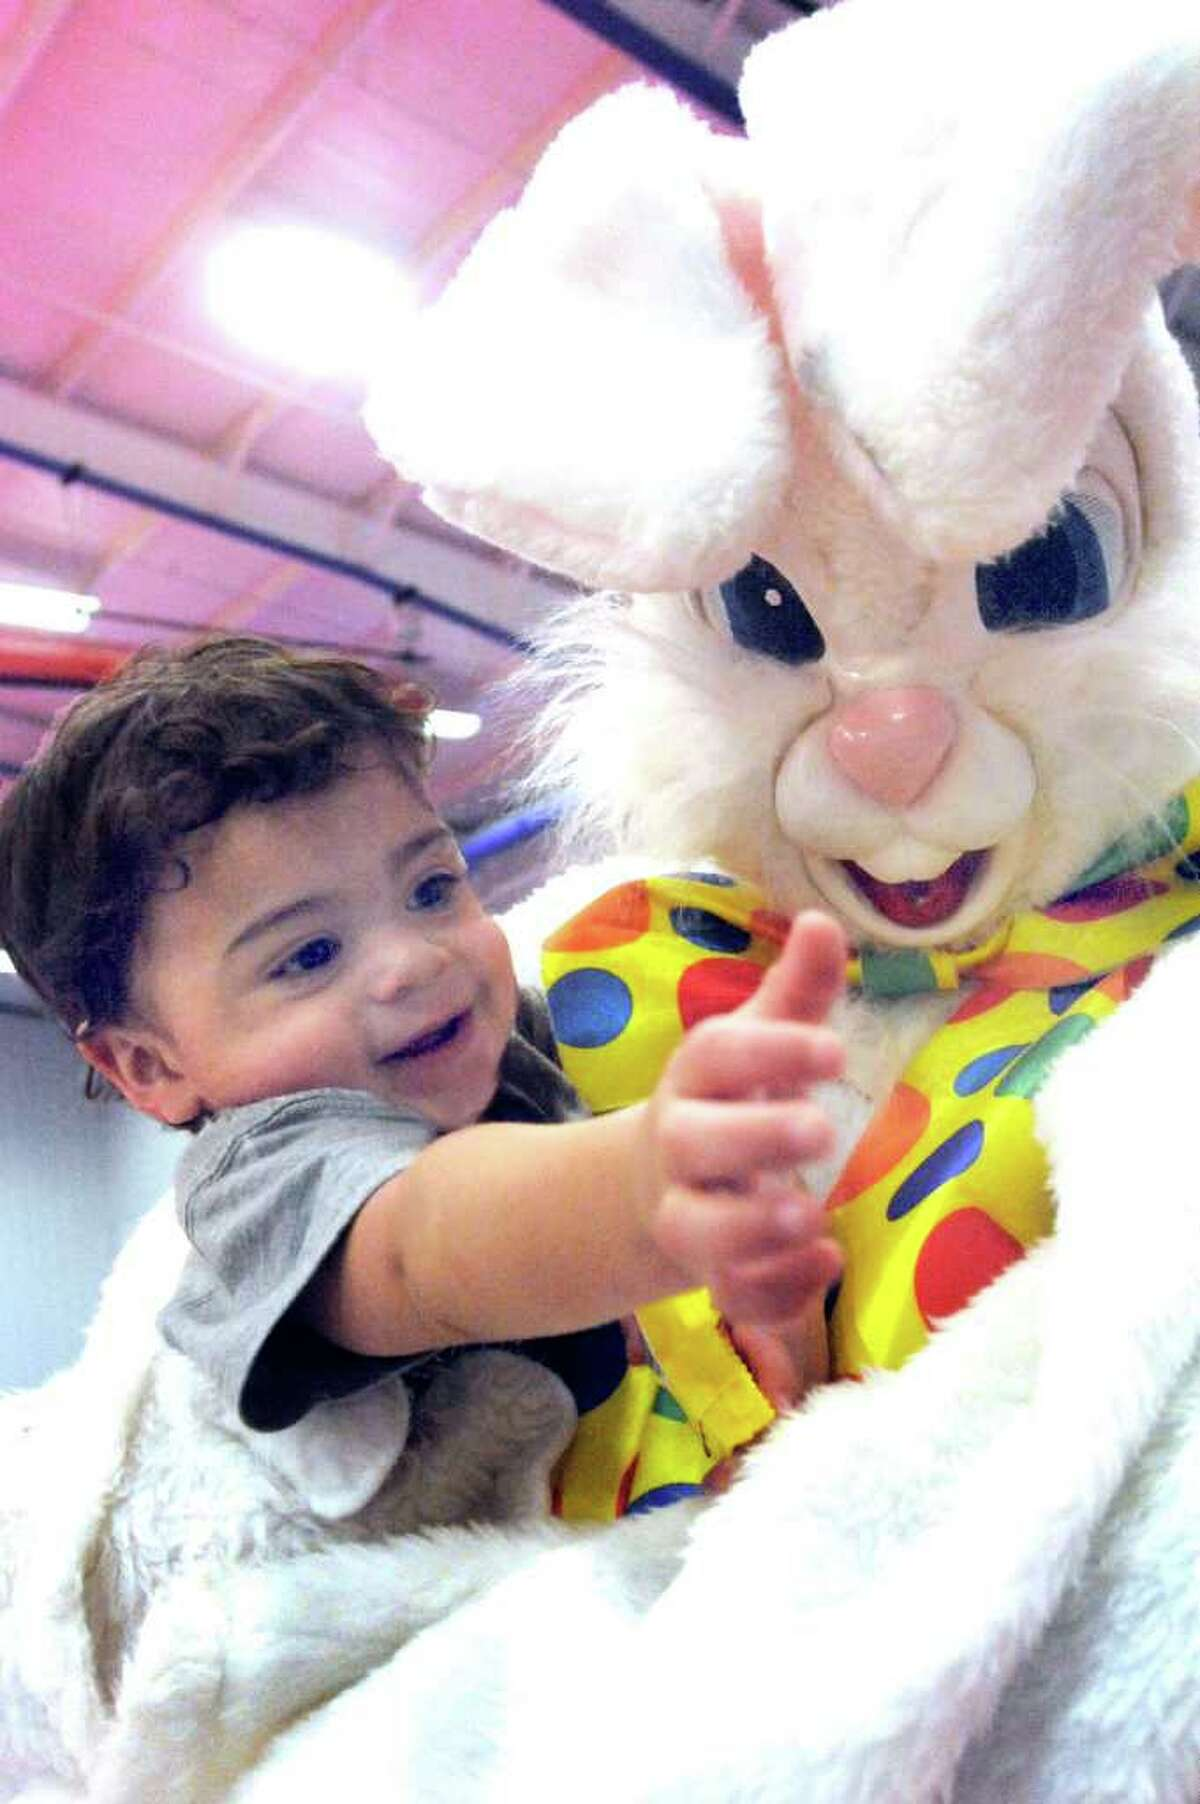 Damien Sanchez, 1, reaches for candy as he hugs the Easter Bunny during the 35th Annual Easter Egg Hunt at the PAL Building in Danbury. The event is sponsored by the Police Athletic League and the Danbury Jaycees.